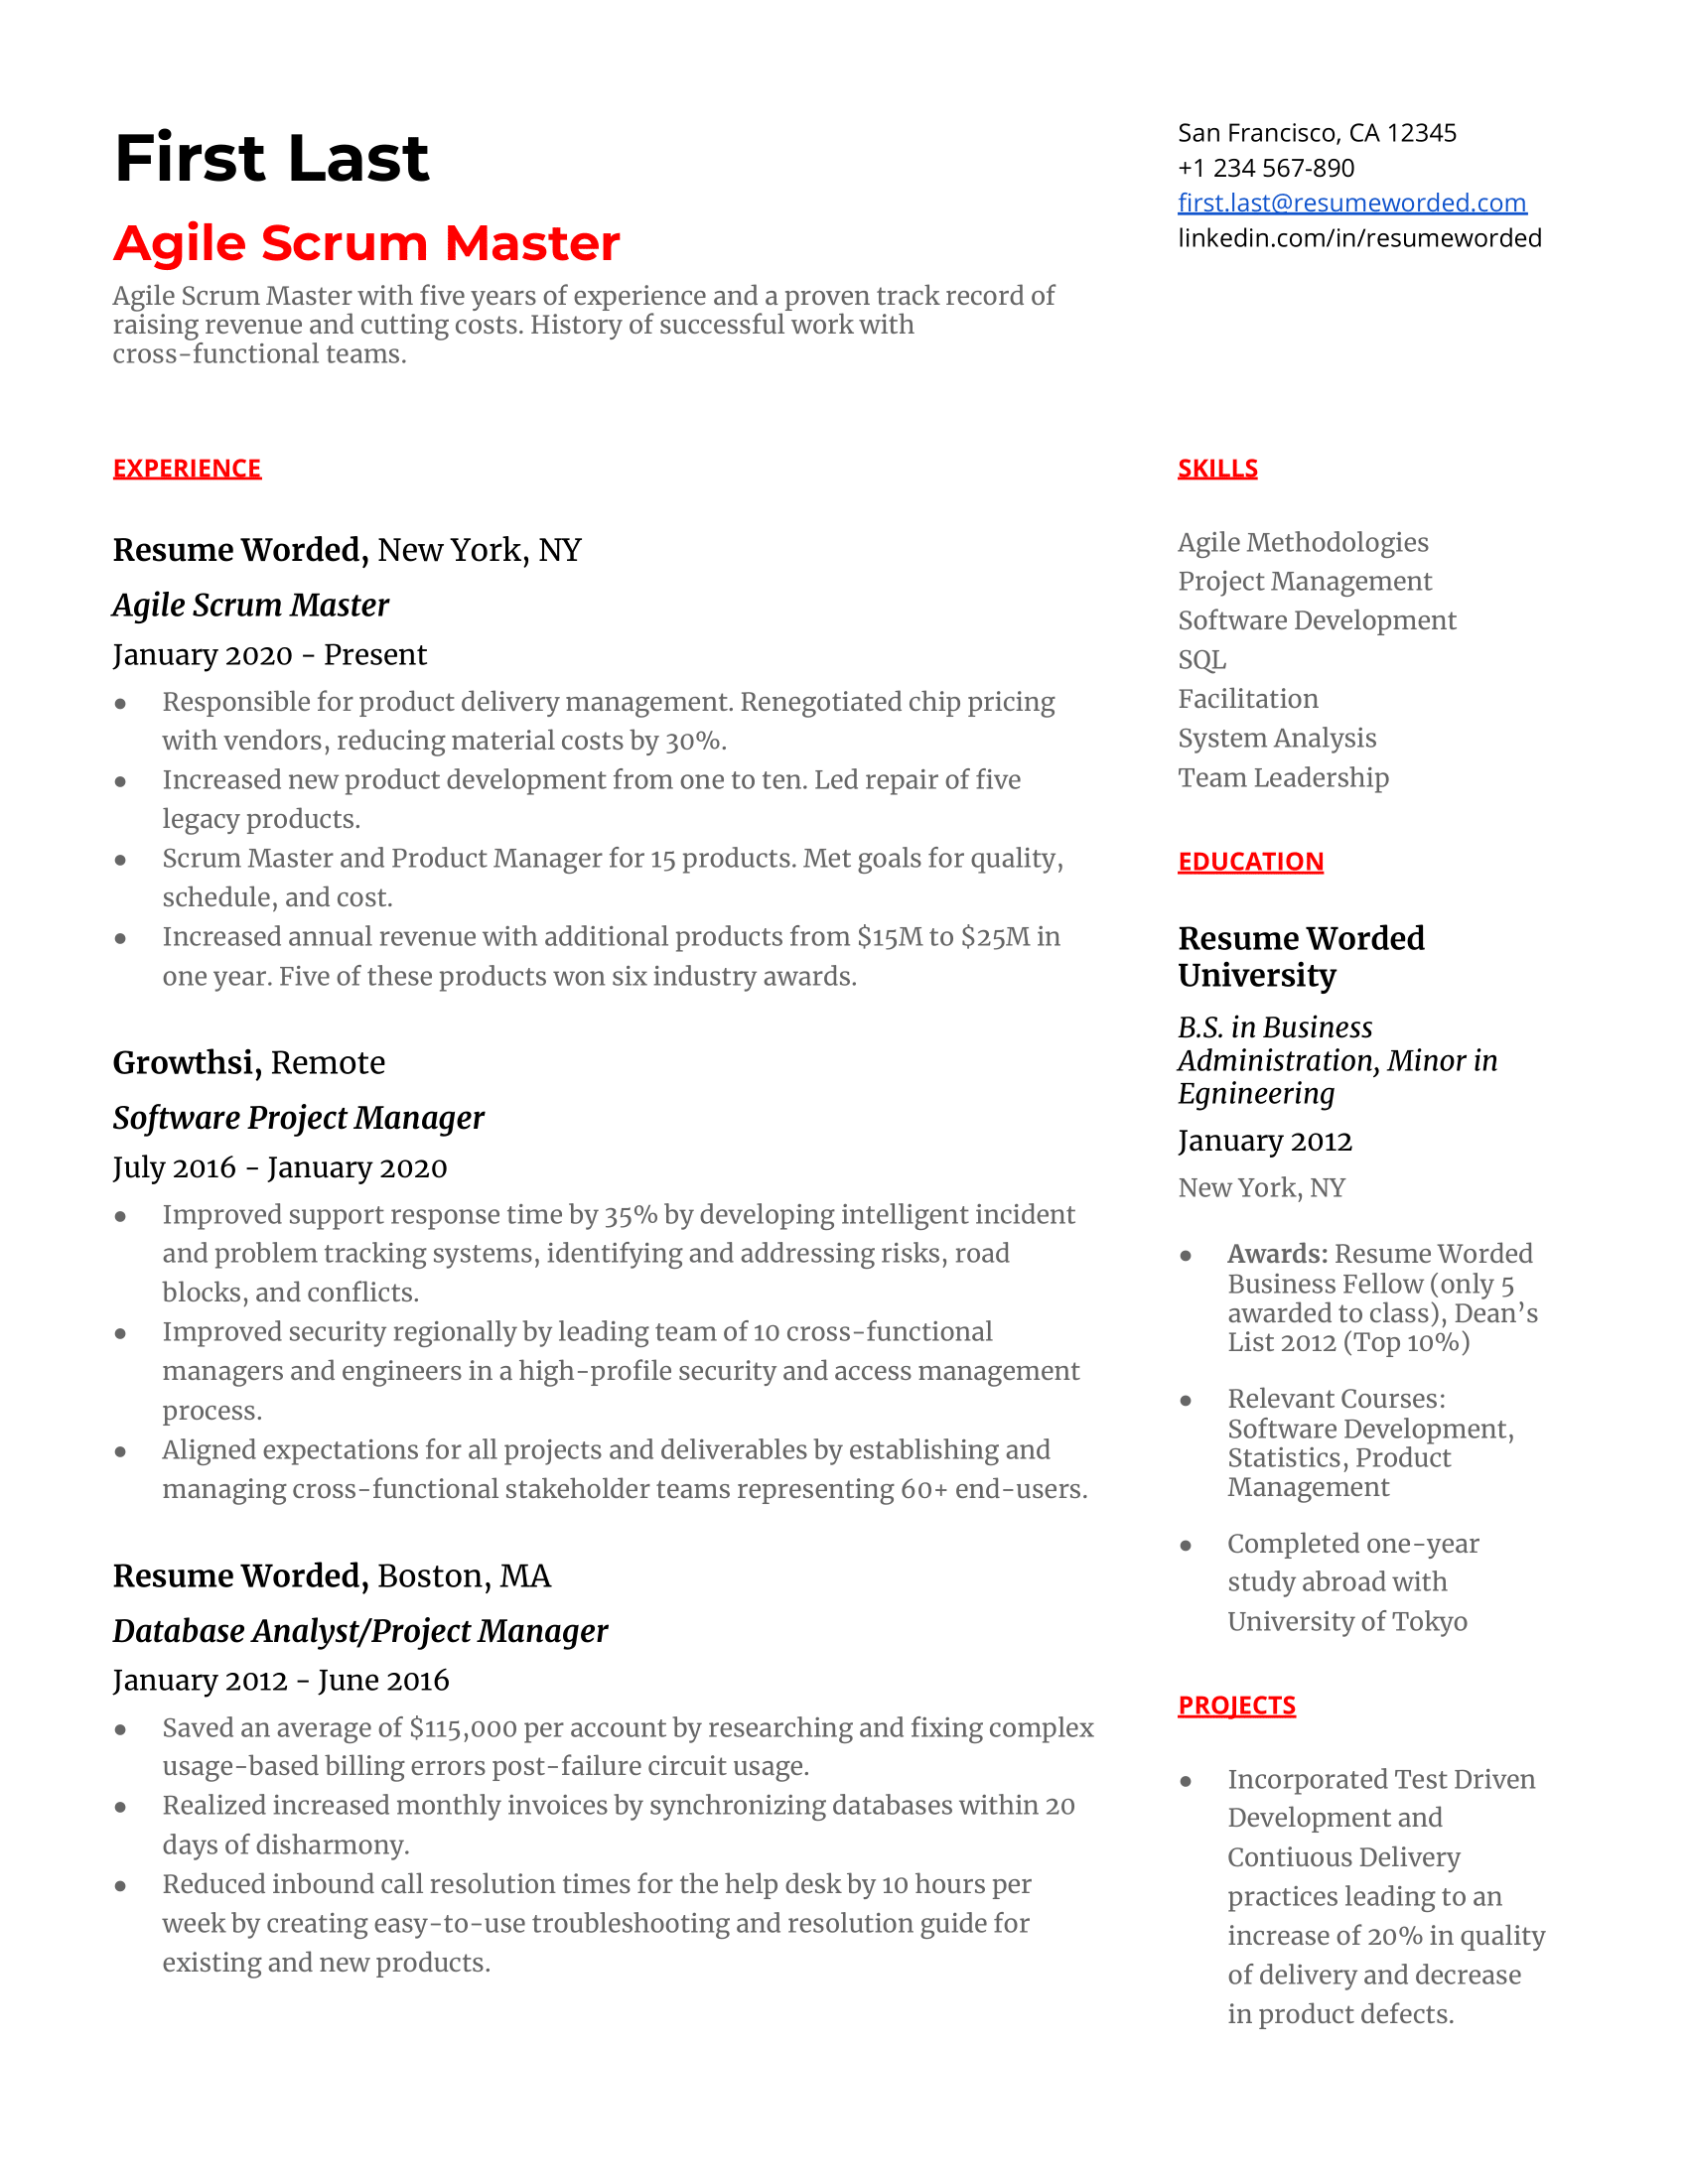 An agile scrum master resume with a brief summary, three most recent and relevant work experiences, education, skills, and other.